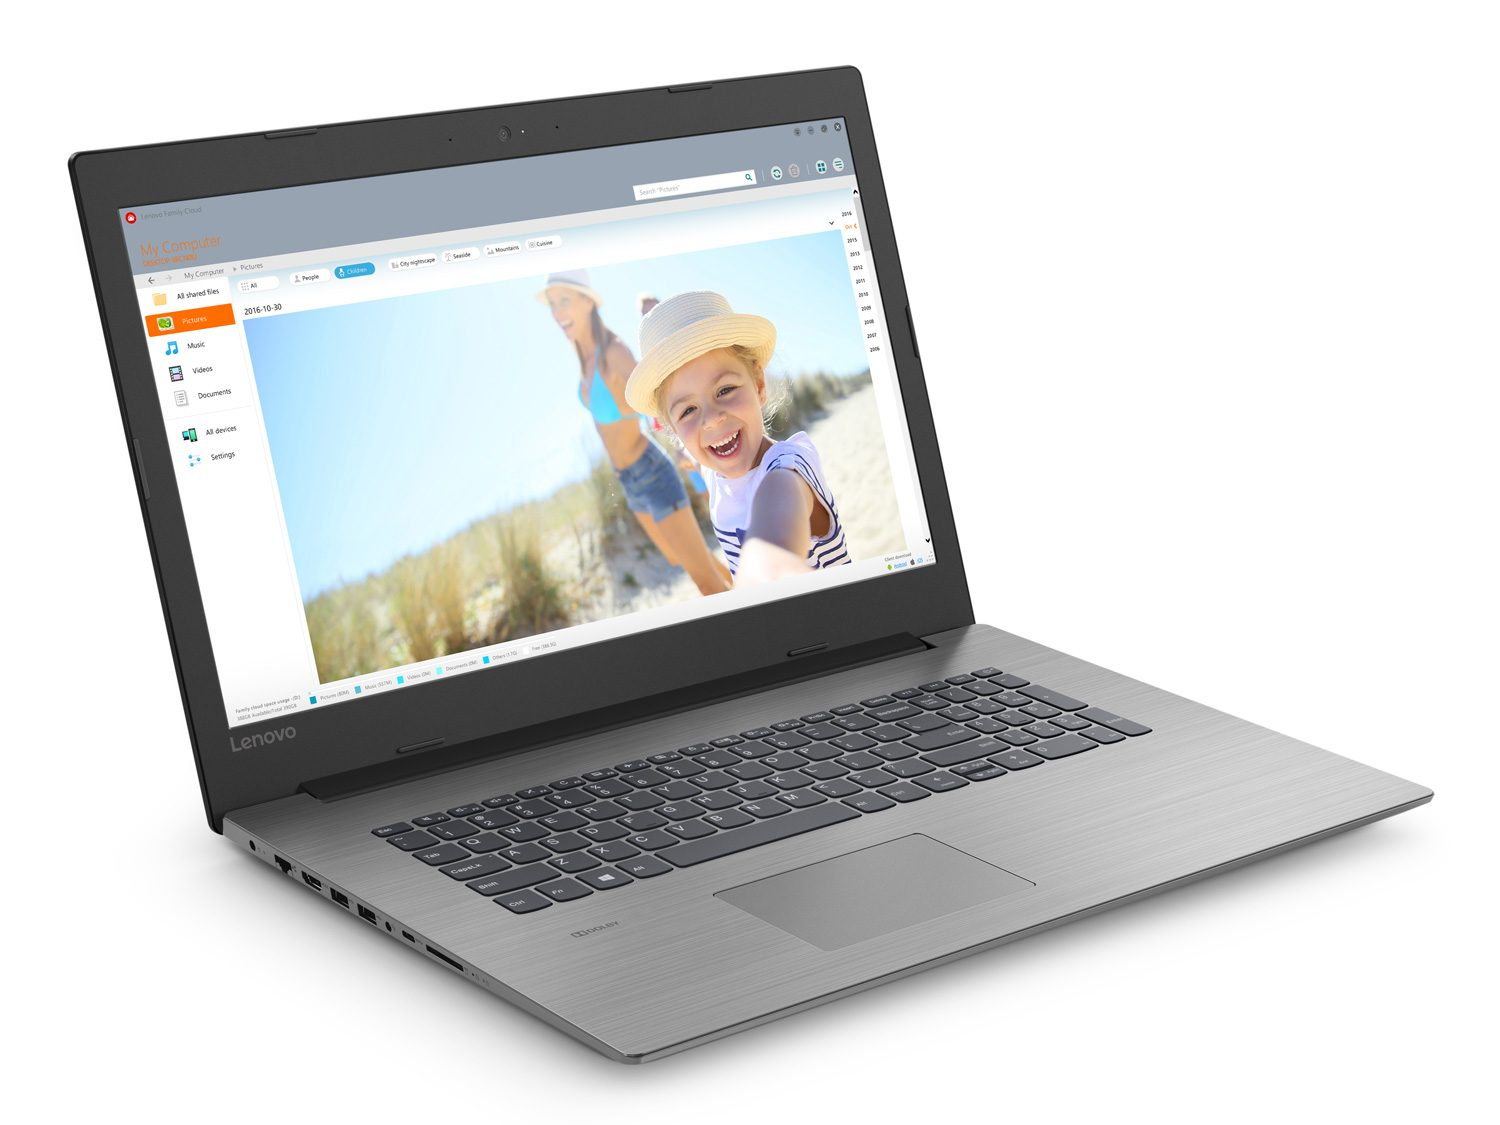 quelle applications a supprimer sur un lenovo yoga 300